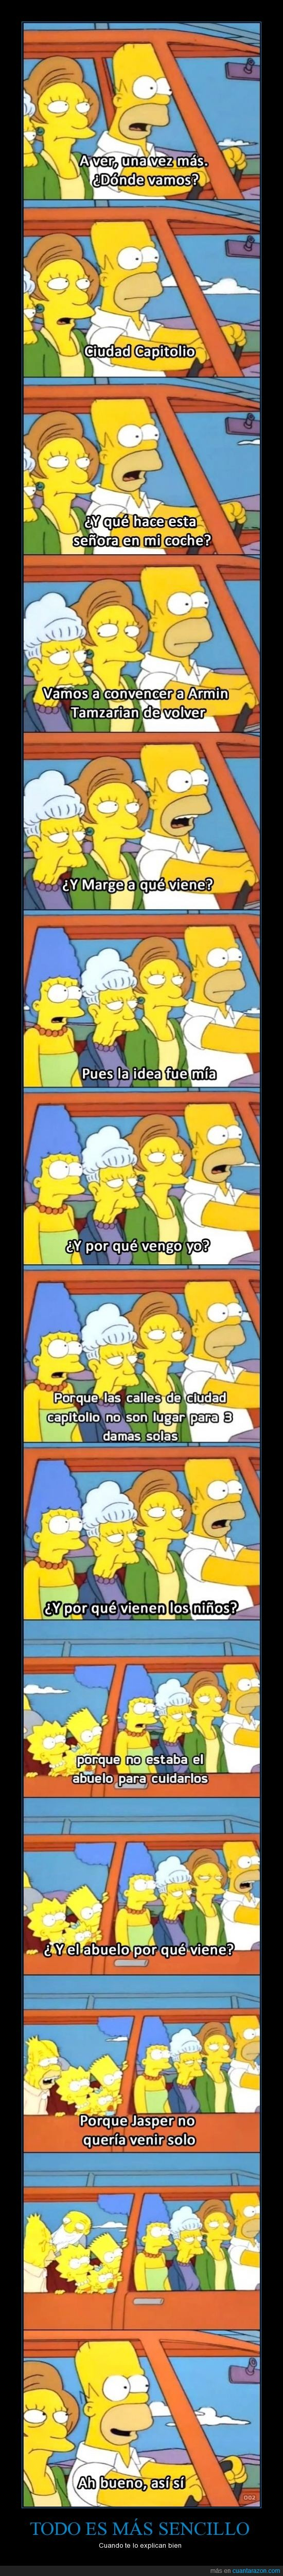 abuelo,armin tamzarian,coche,homer,jasper,los simpson,marge,seymour skinner,todos